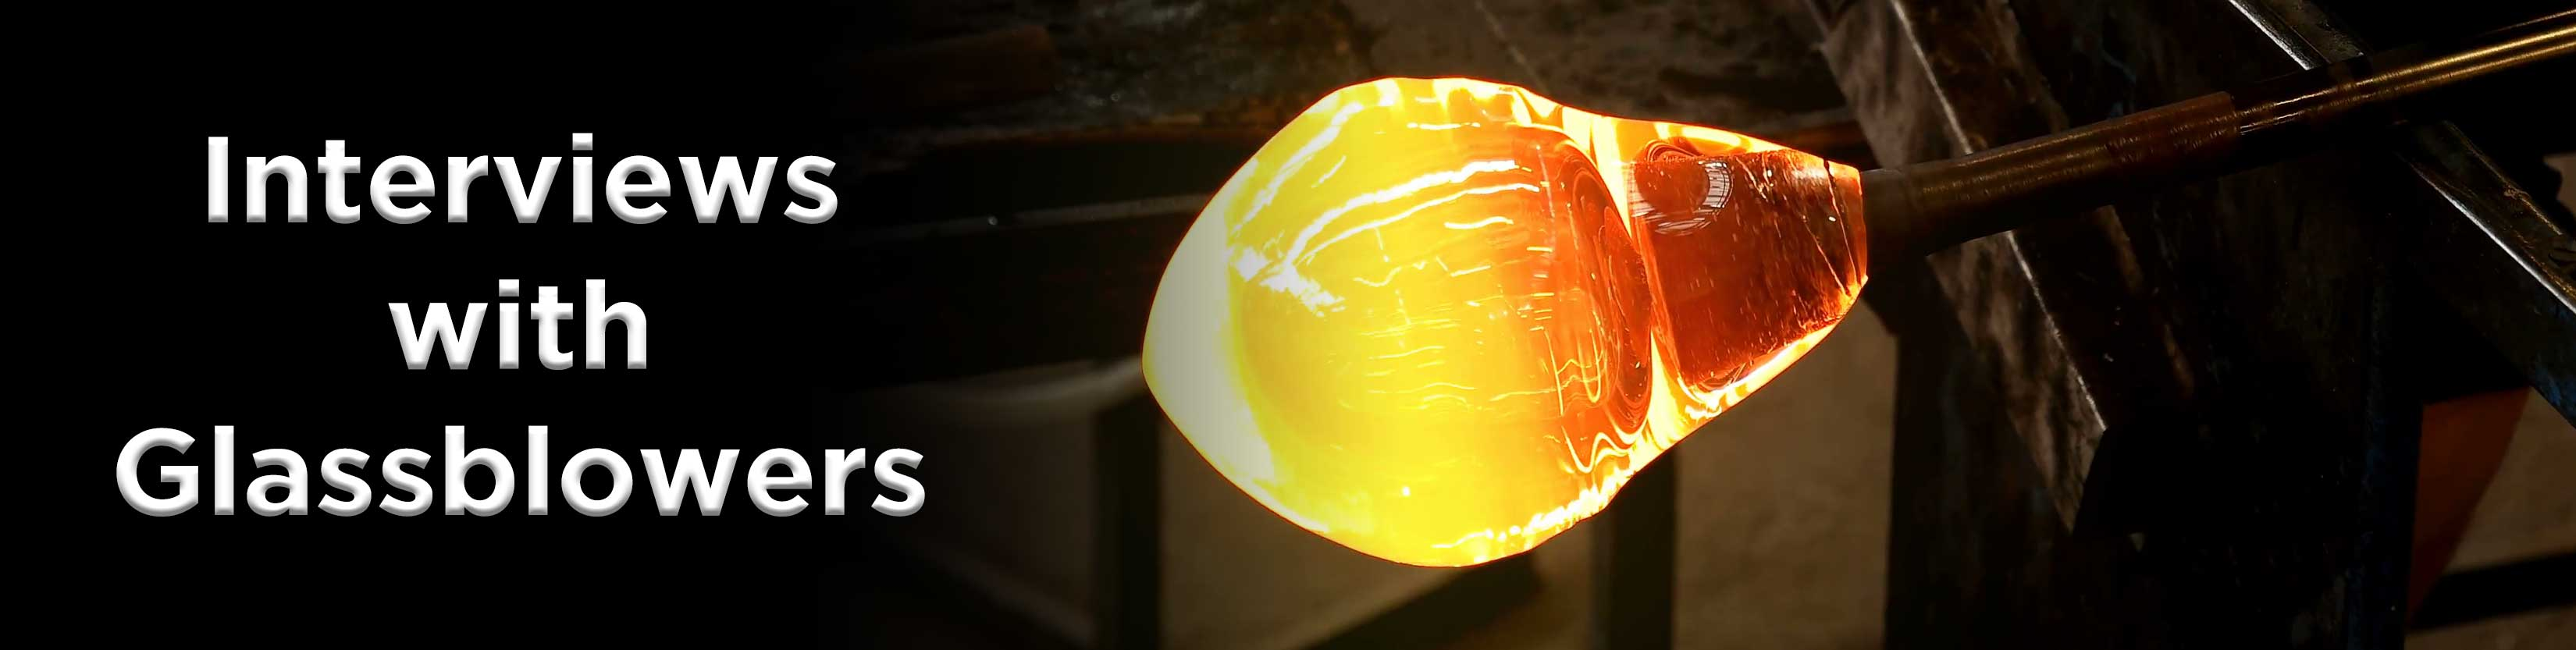 Interviews with Glassblowers